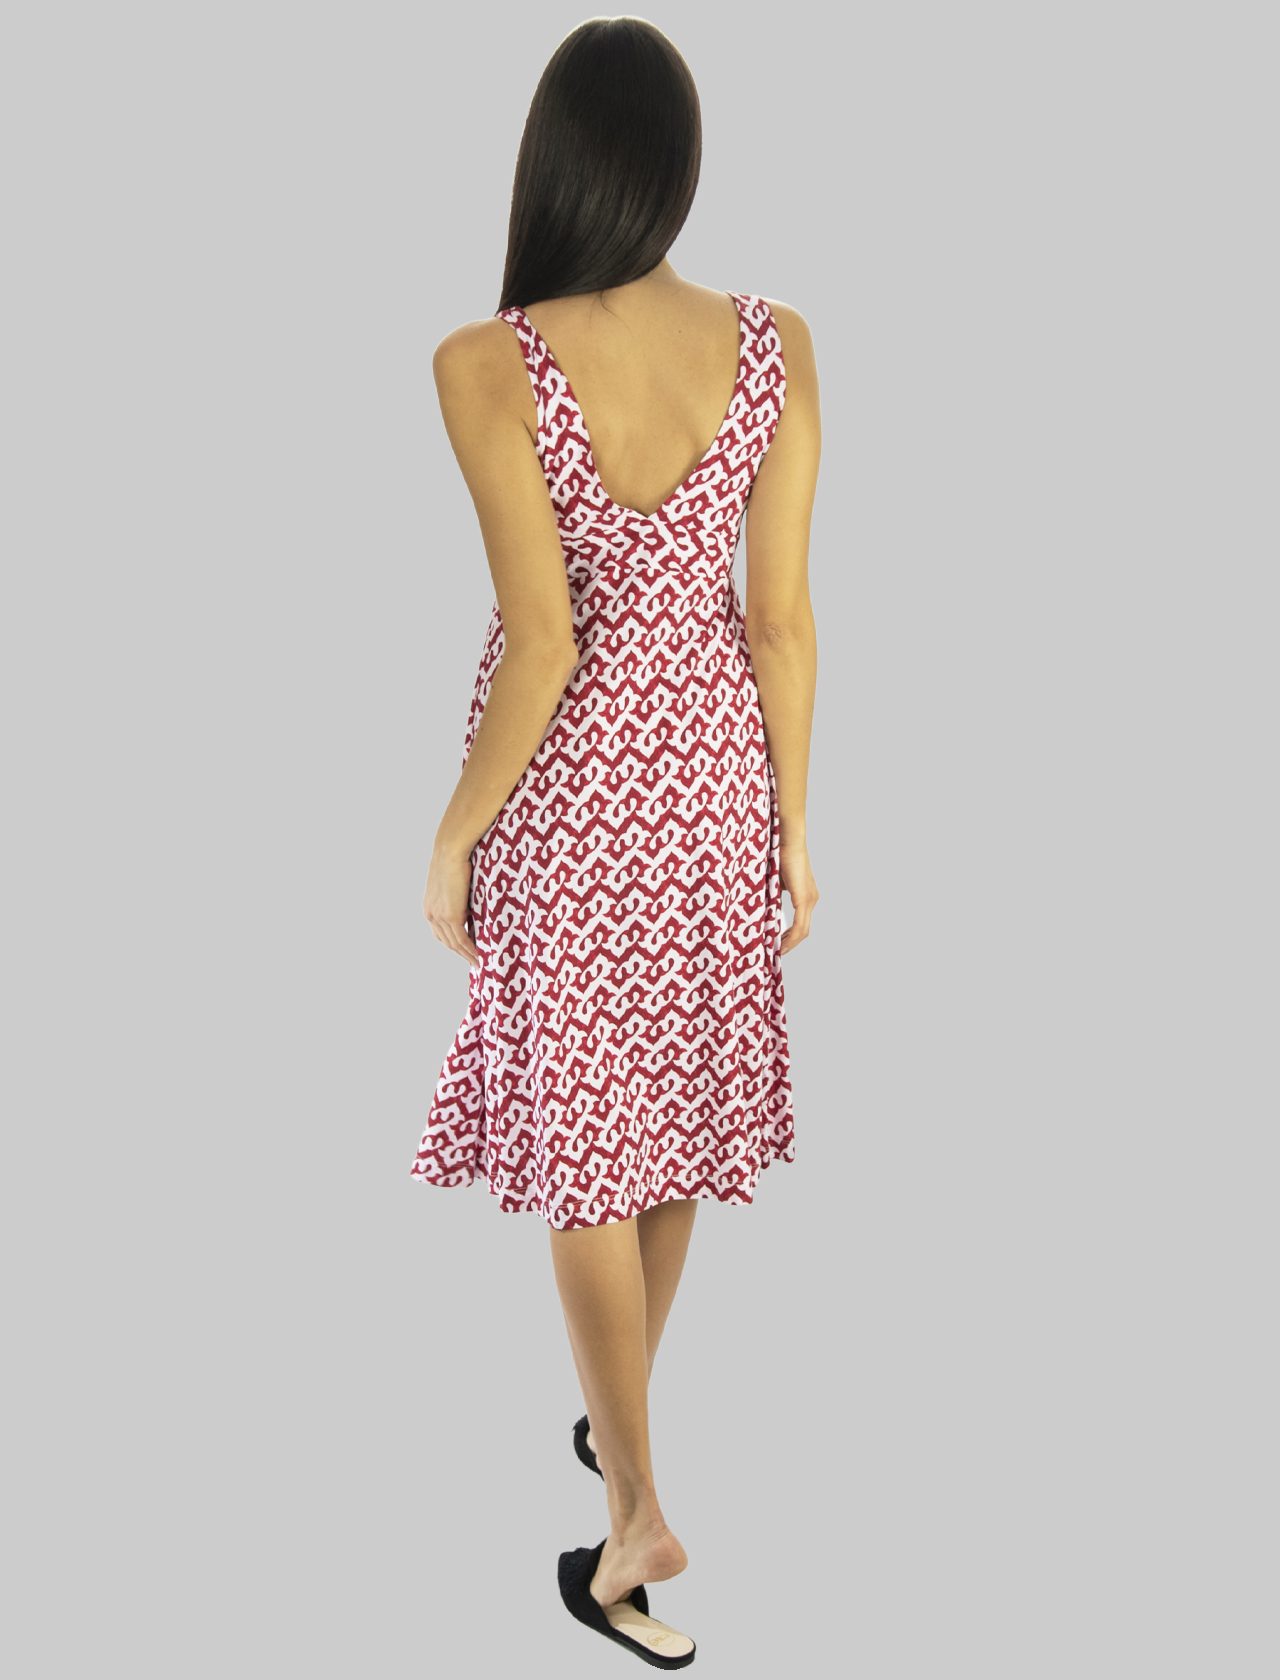 Women's Clothing Midi Ceres Drop Dress in Jersey in Red and Pink Maliparmi |  | JF643870498A3092